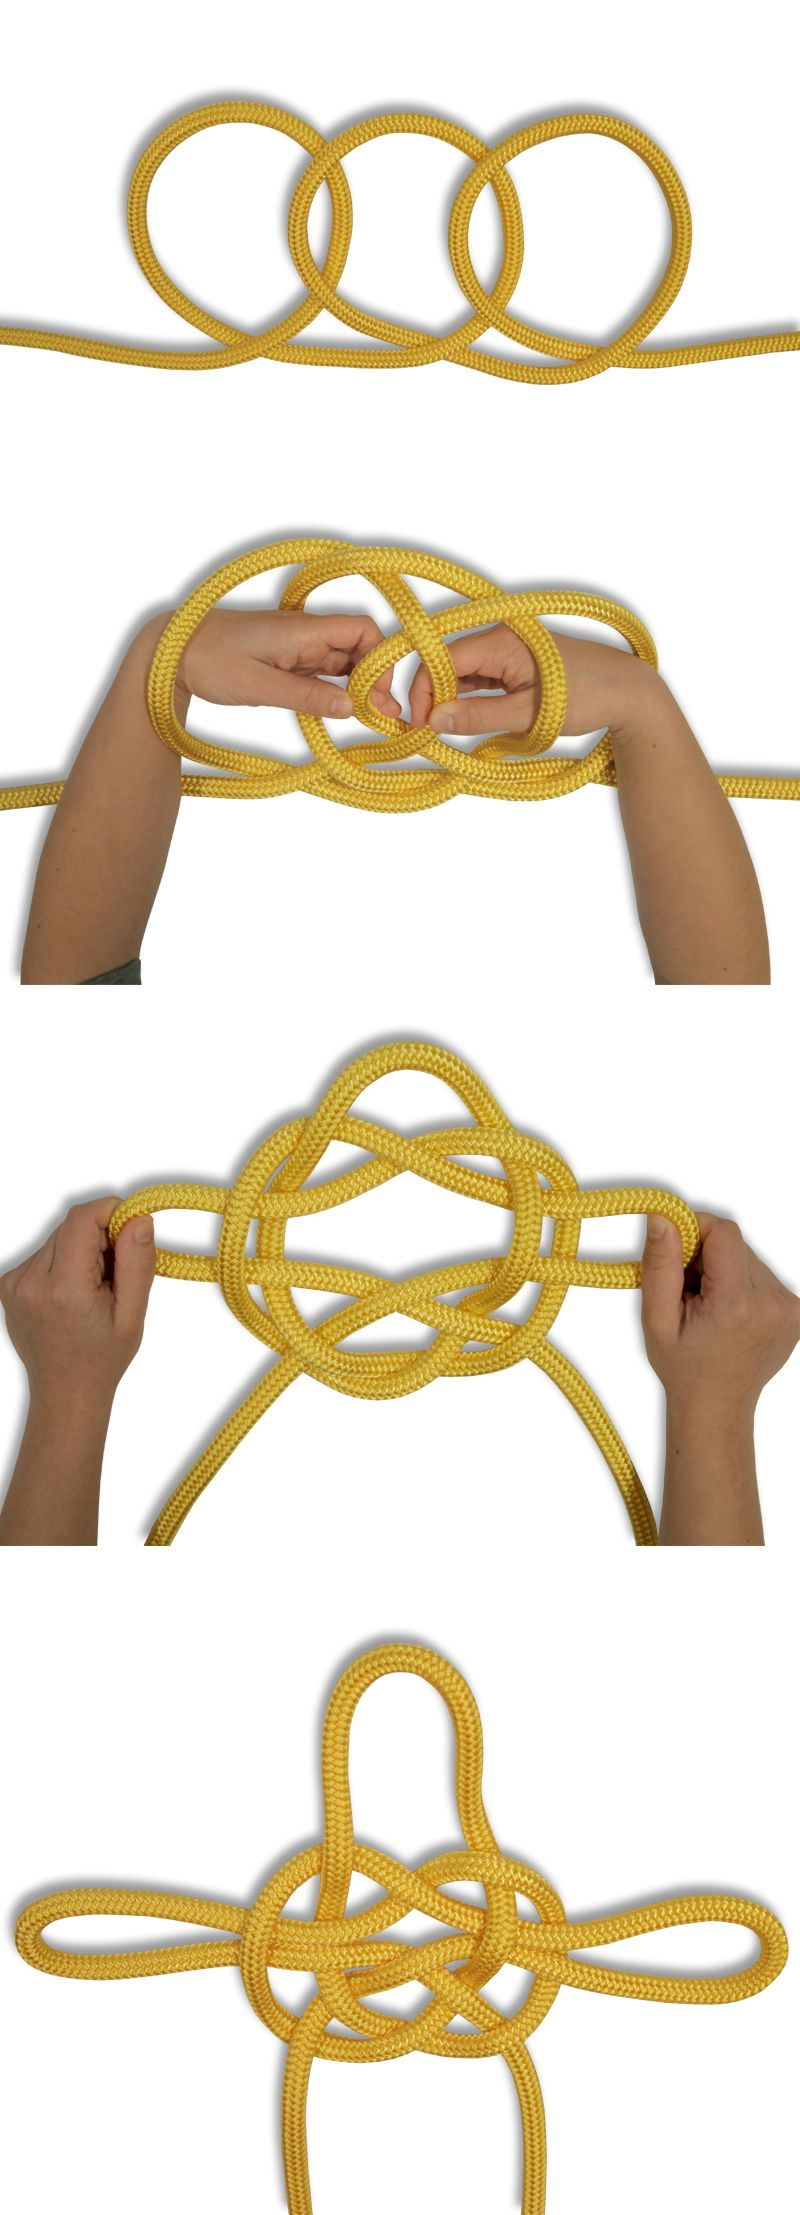 How to tie knots jury mast knot paracord macrame and survival